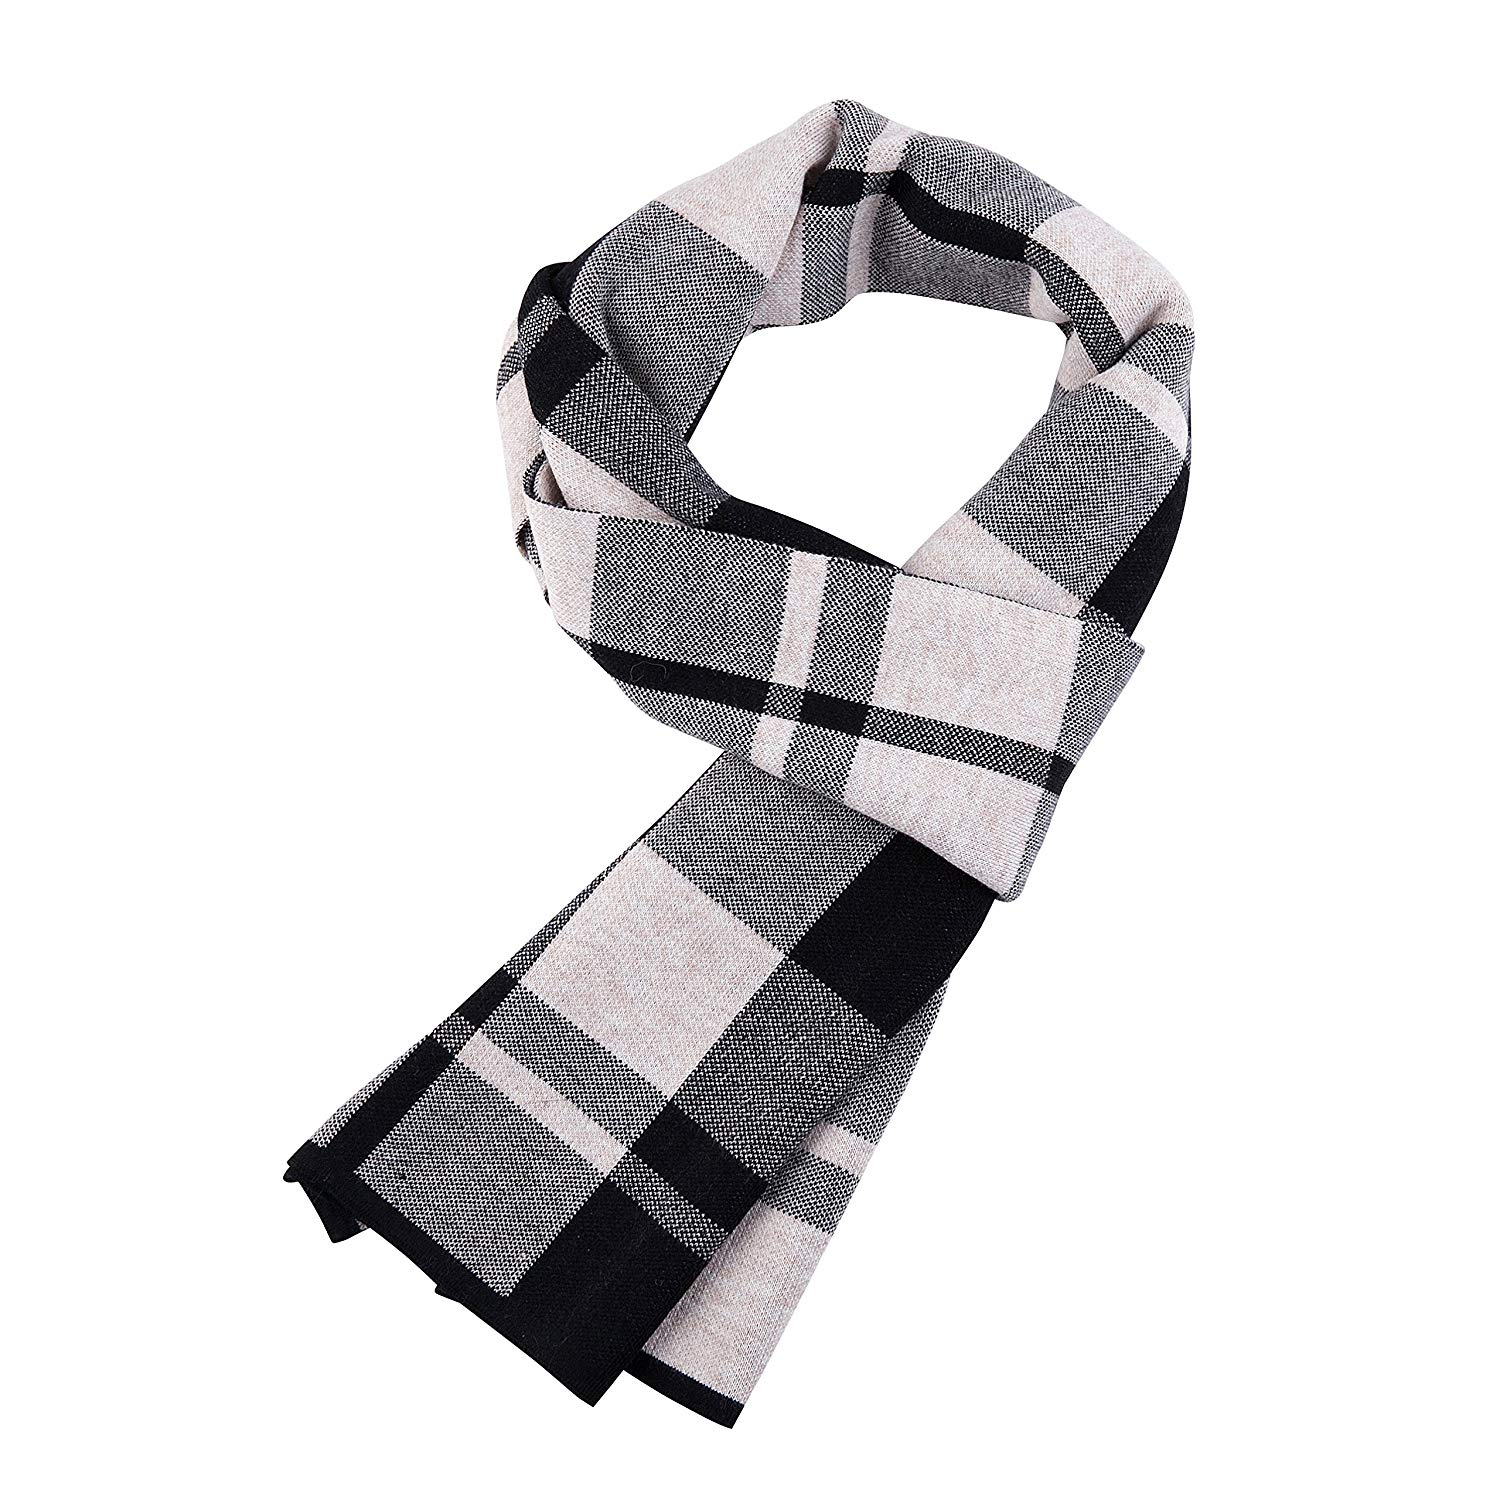 Men's Winter Fashionable Soft Colorful Striped Knit Long Scarf Softer Cashmere Feel Wool Touch Plaid Solid